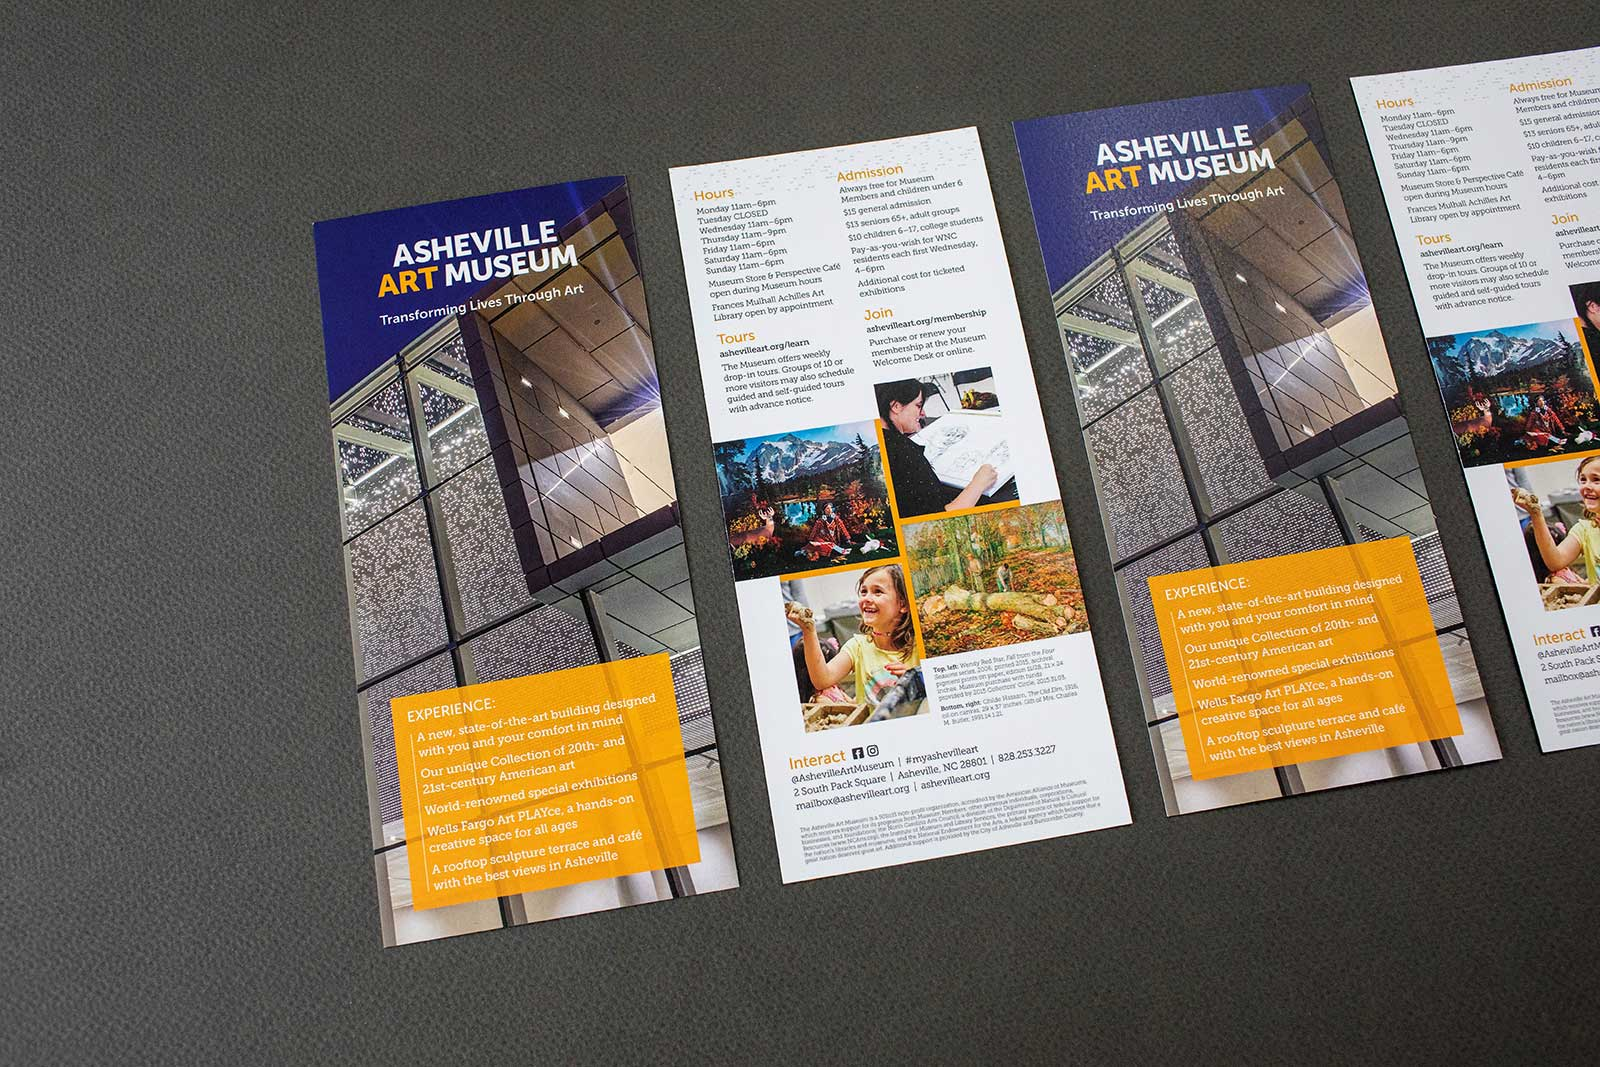 Rack card for Asheville Art Museum with tightly cropped image of the building oculus against a deep blue sky. Images of patrons at the museum.